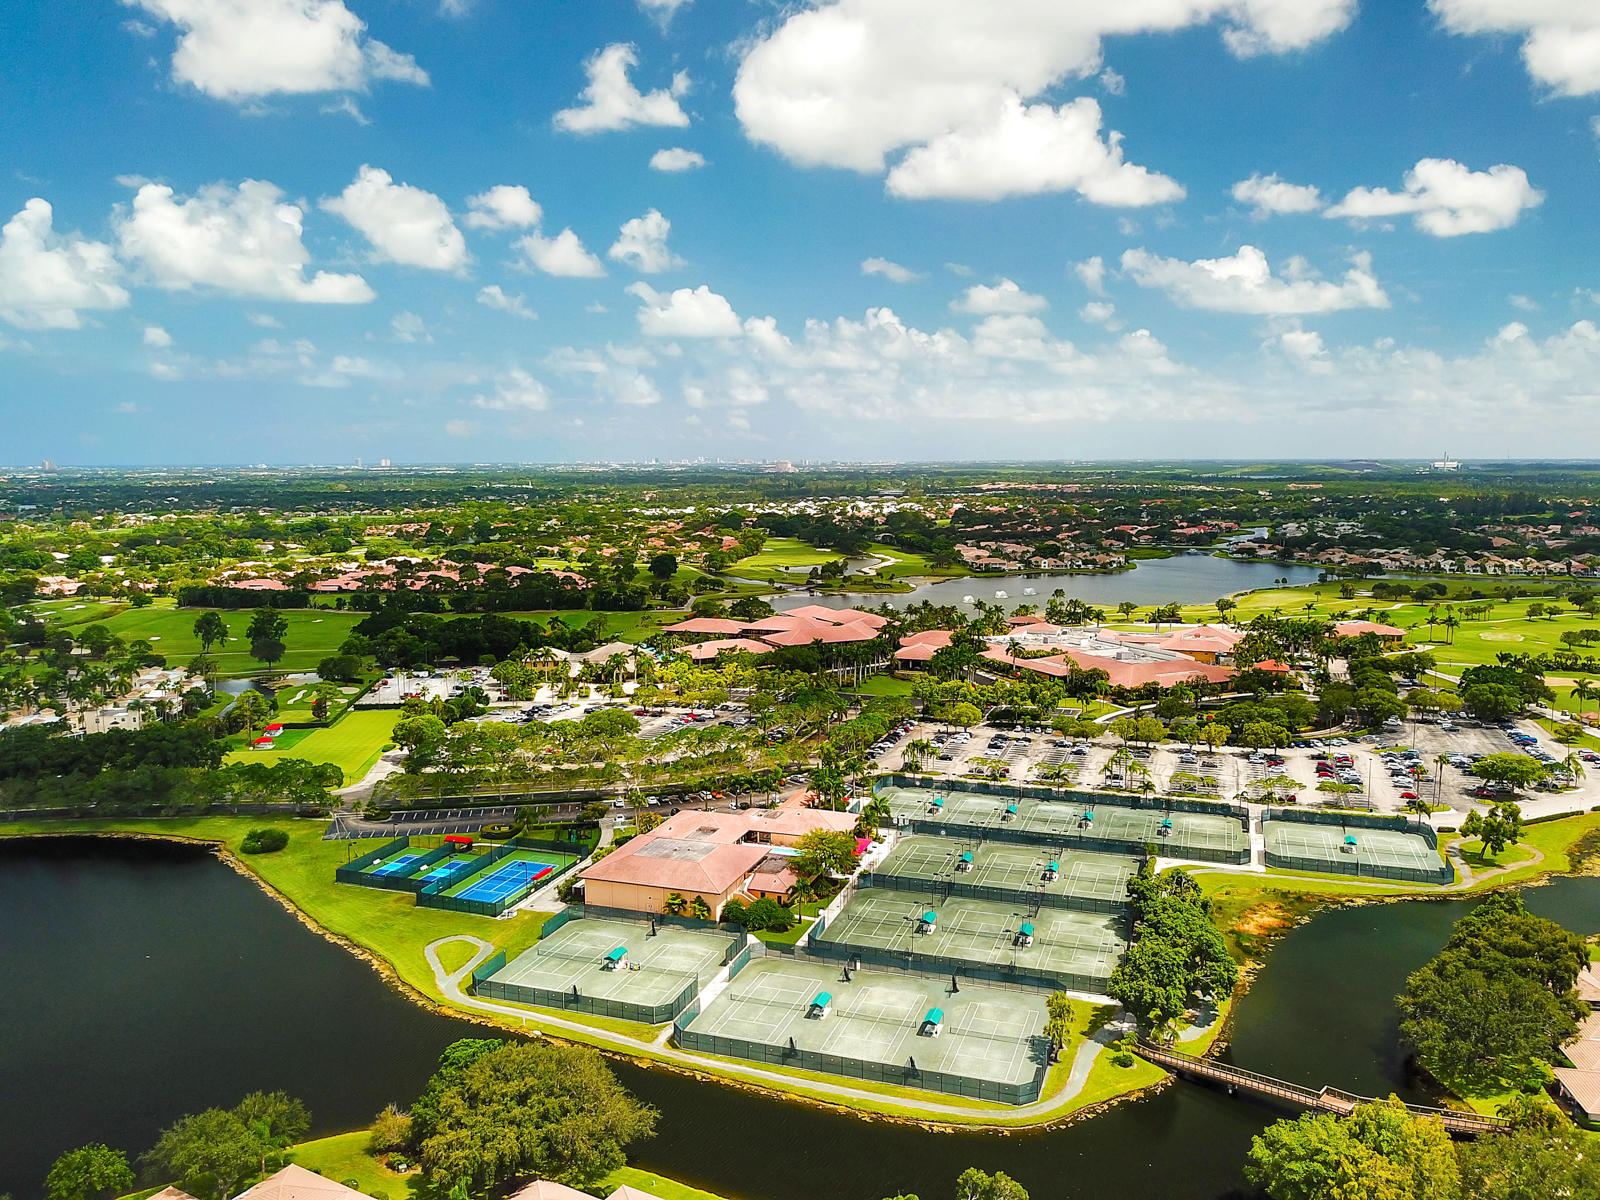 PGA NATIONAL PALM BEACH GARDENS REAL ESTATE